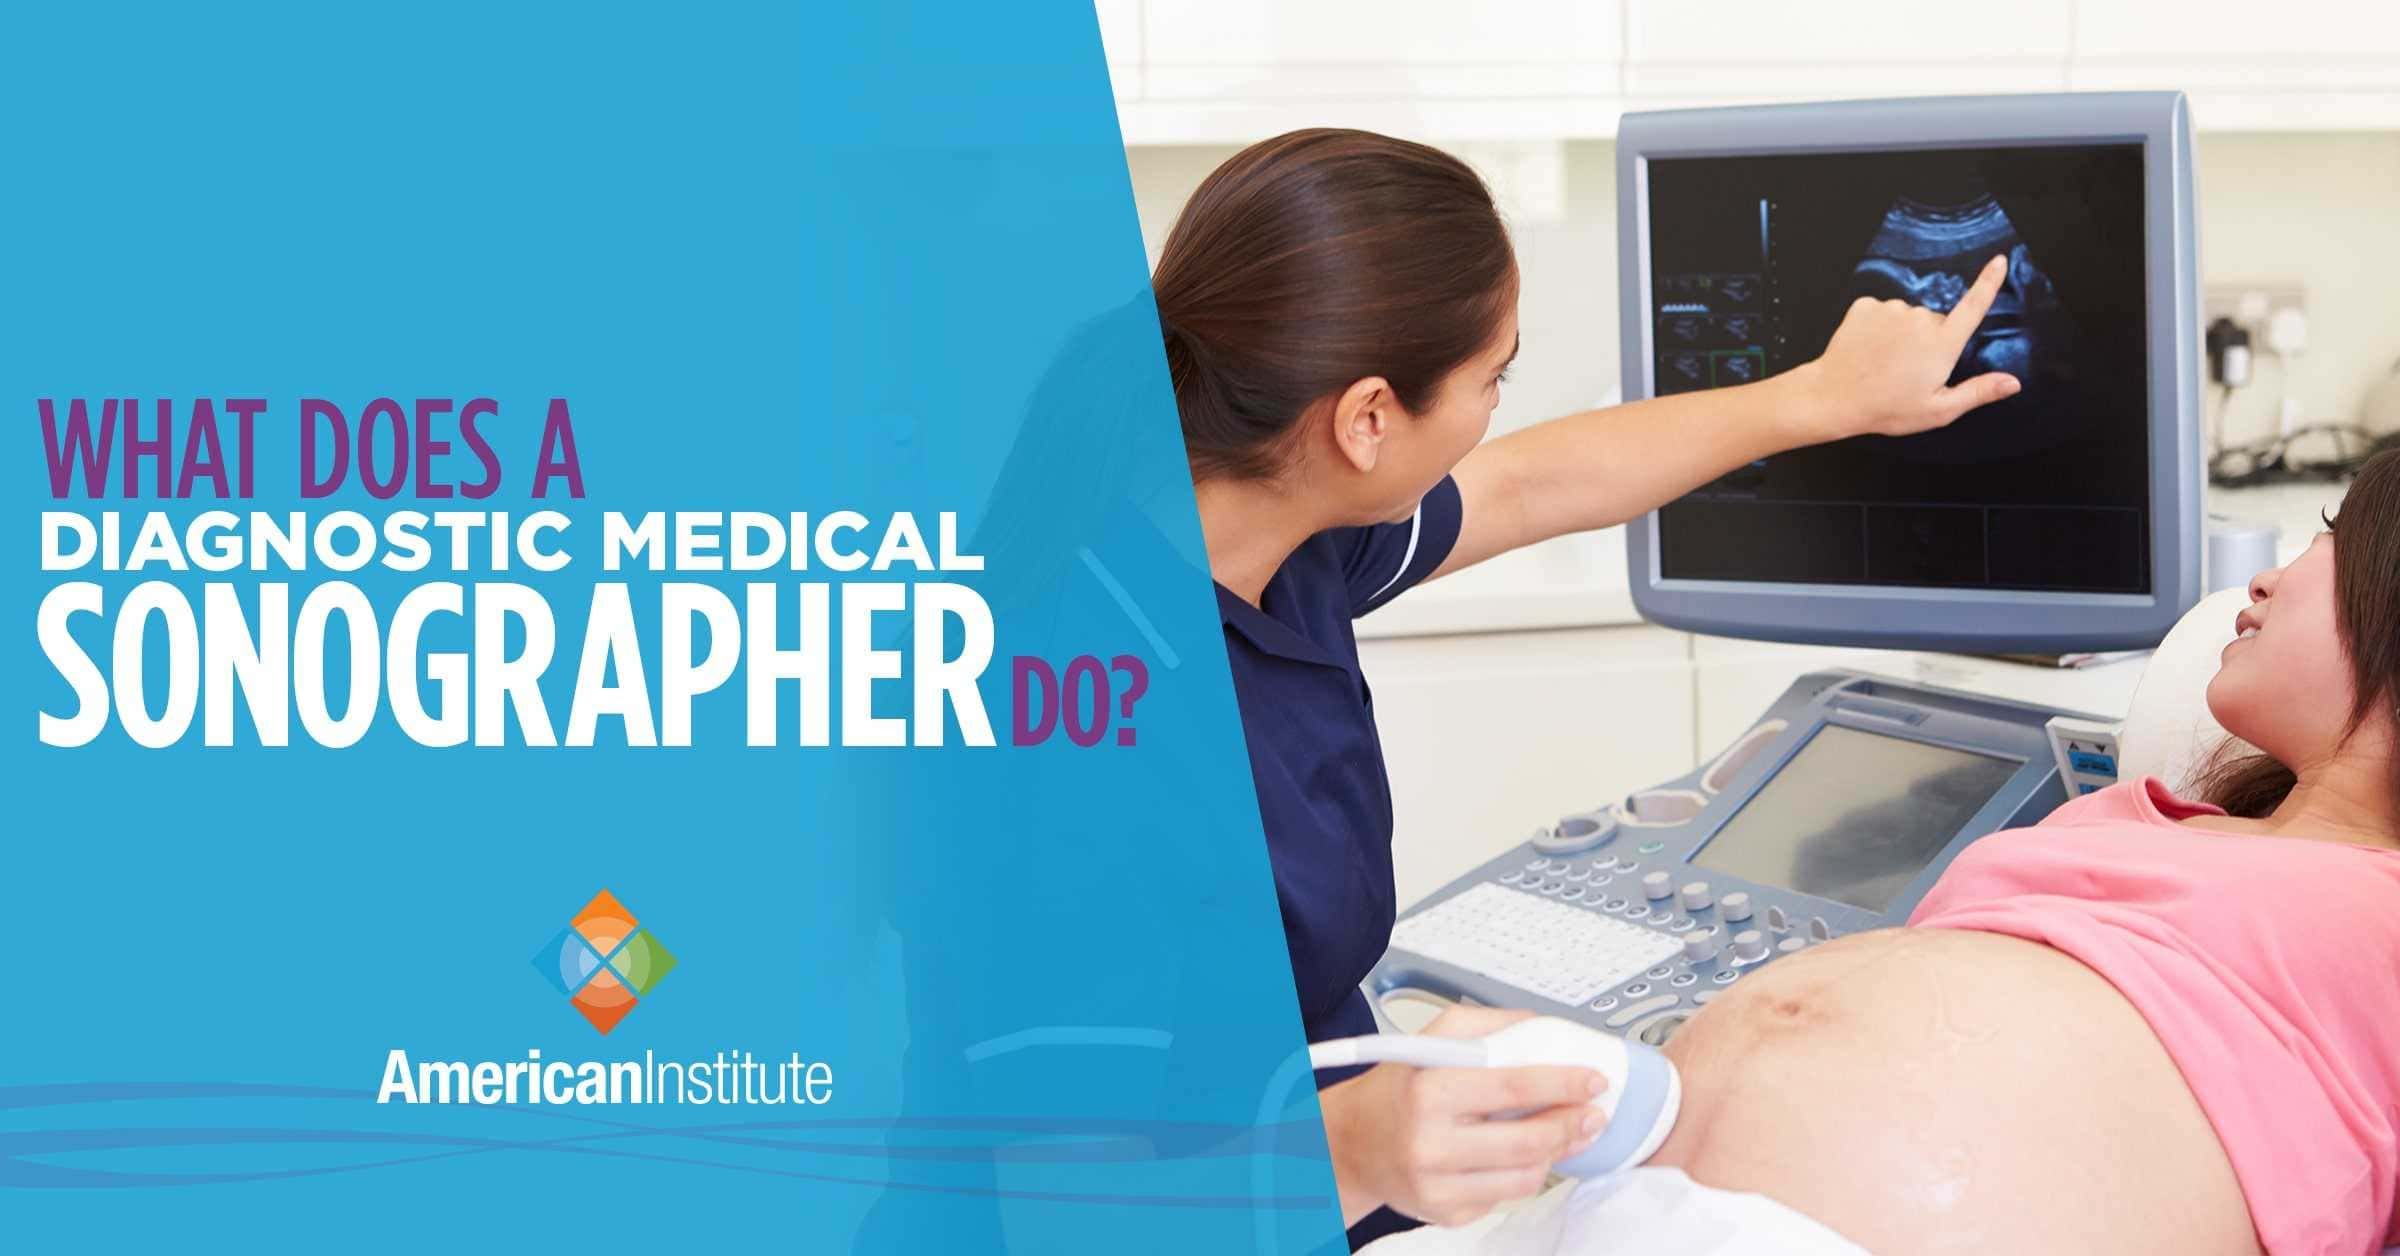 What Does a Diagnostic Medical Sonographer Do?